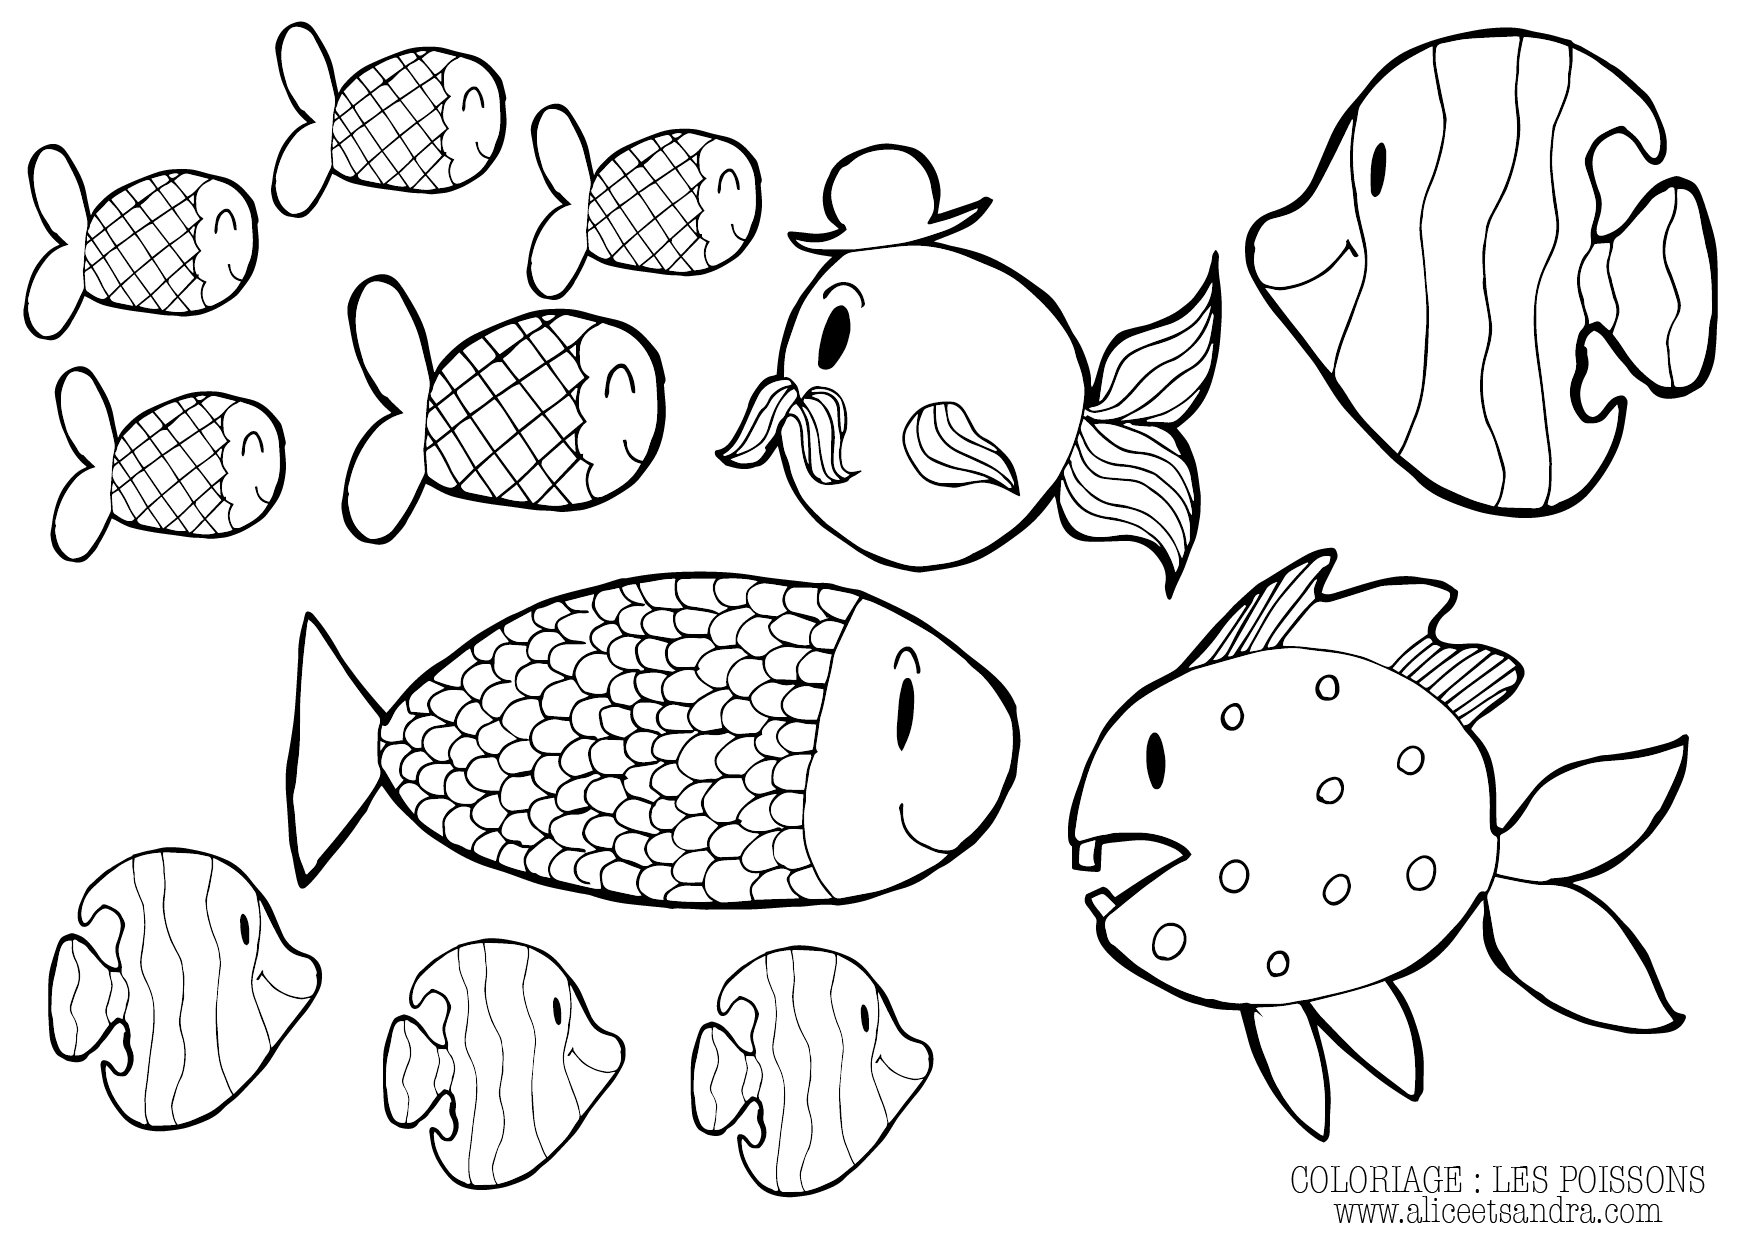 Coloriage imprimer poisson d avril alice sandra - Coloriage avril ...